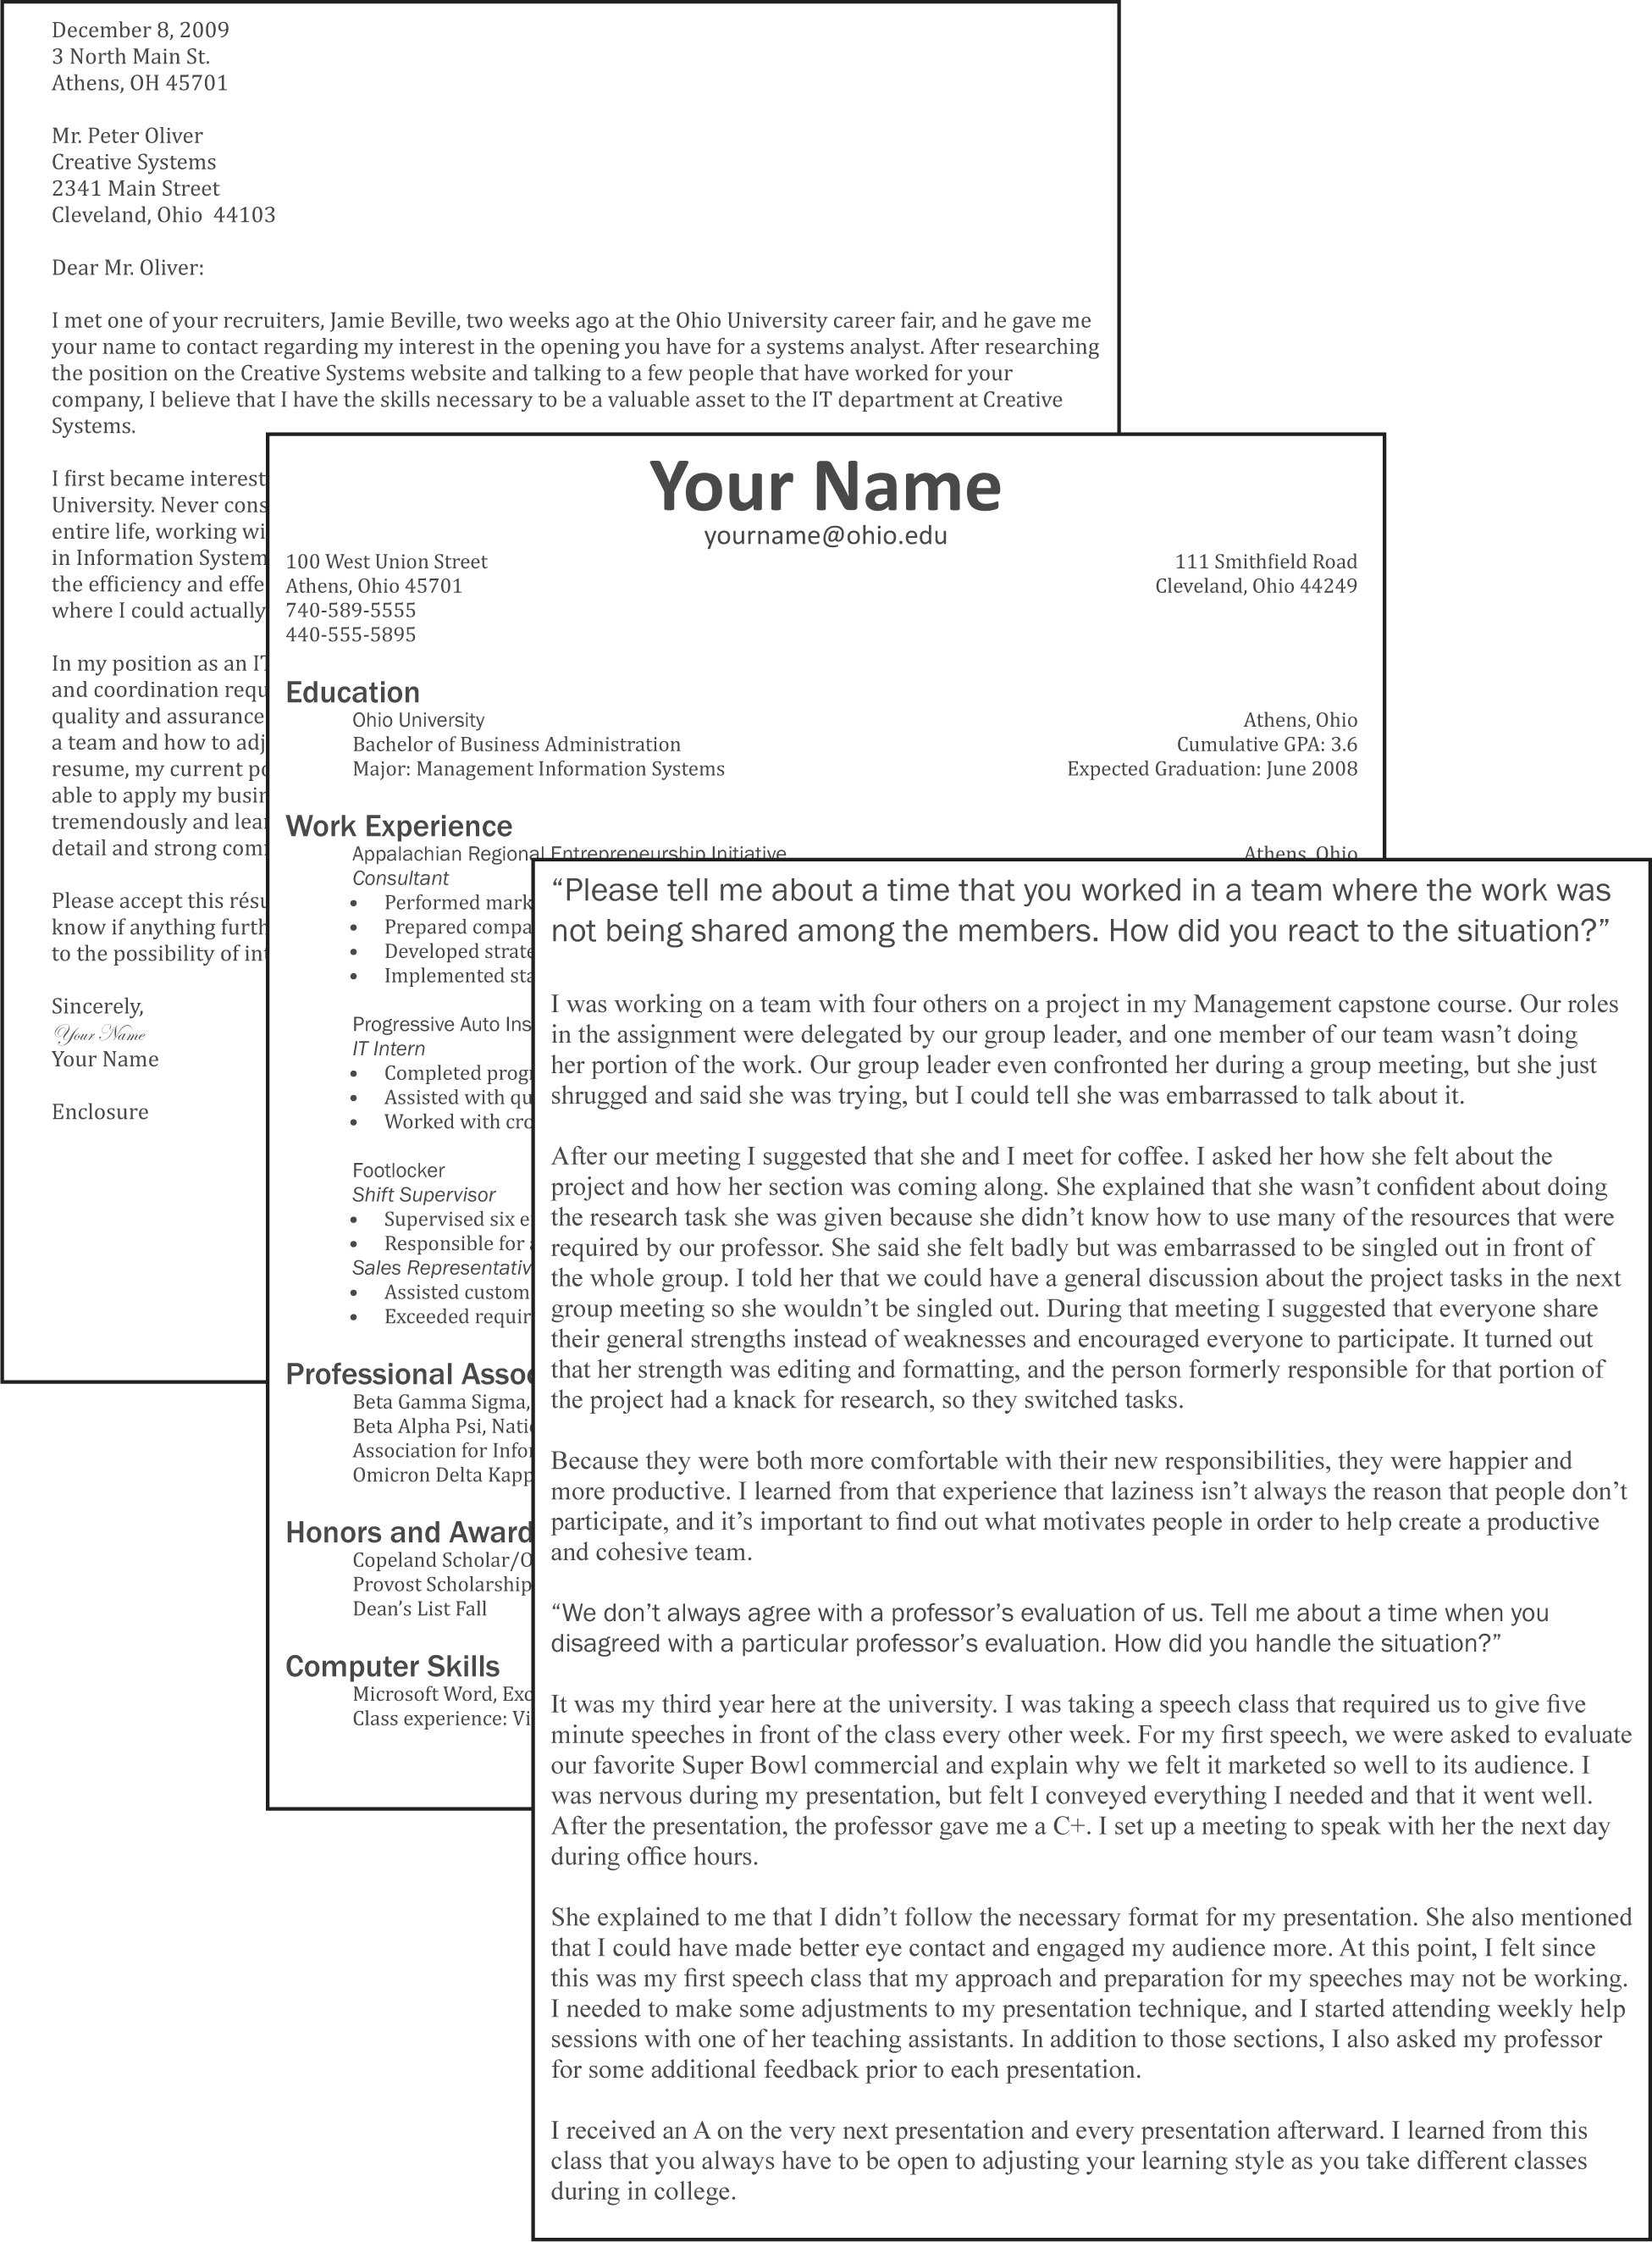 Sample Of A Cover Letter For A Resume from saylordotorg.github.io